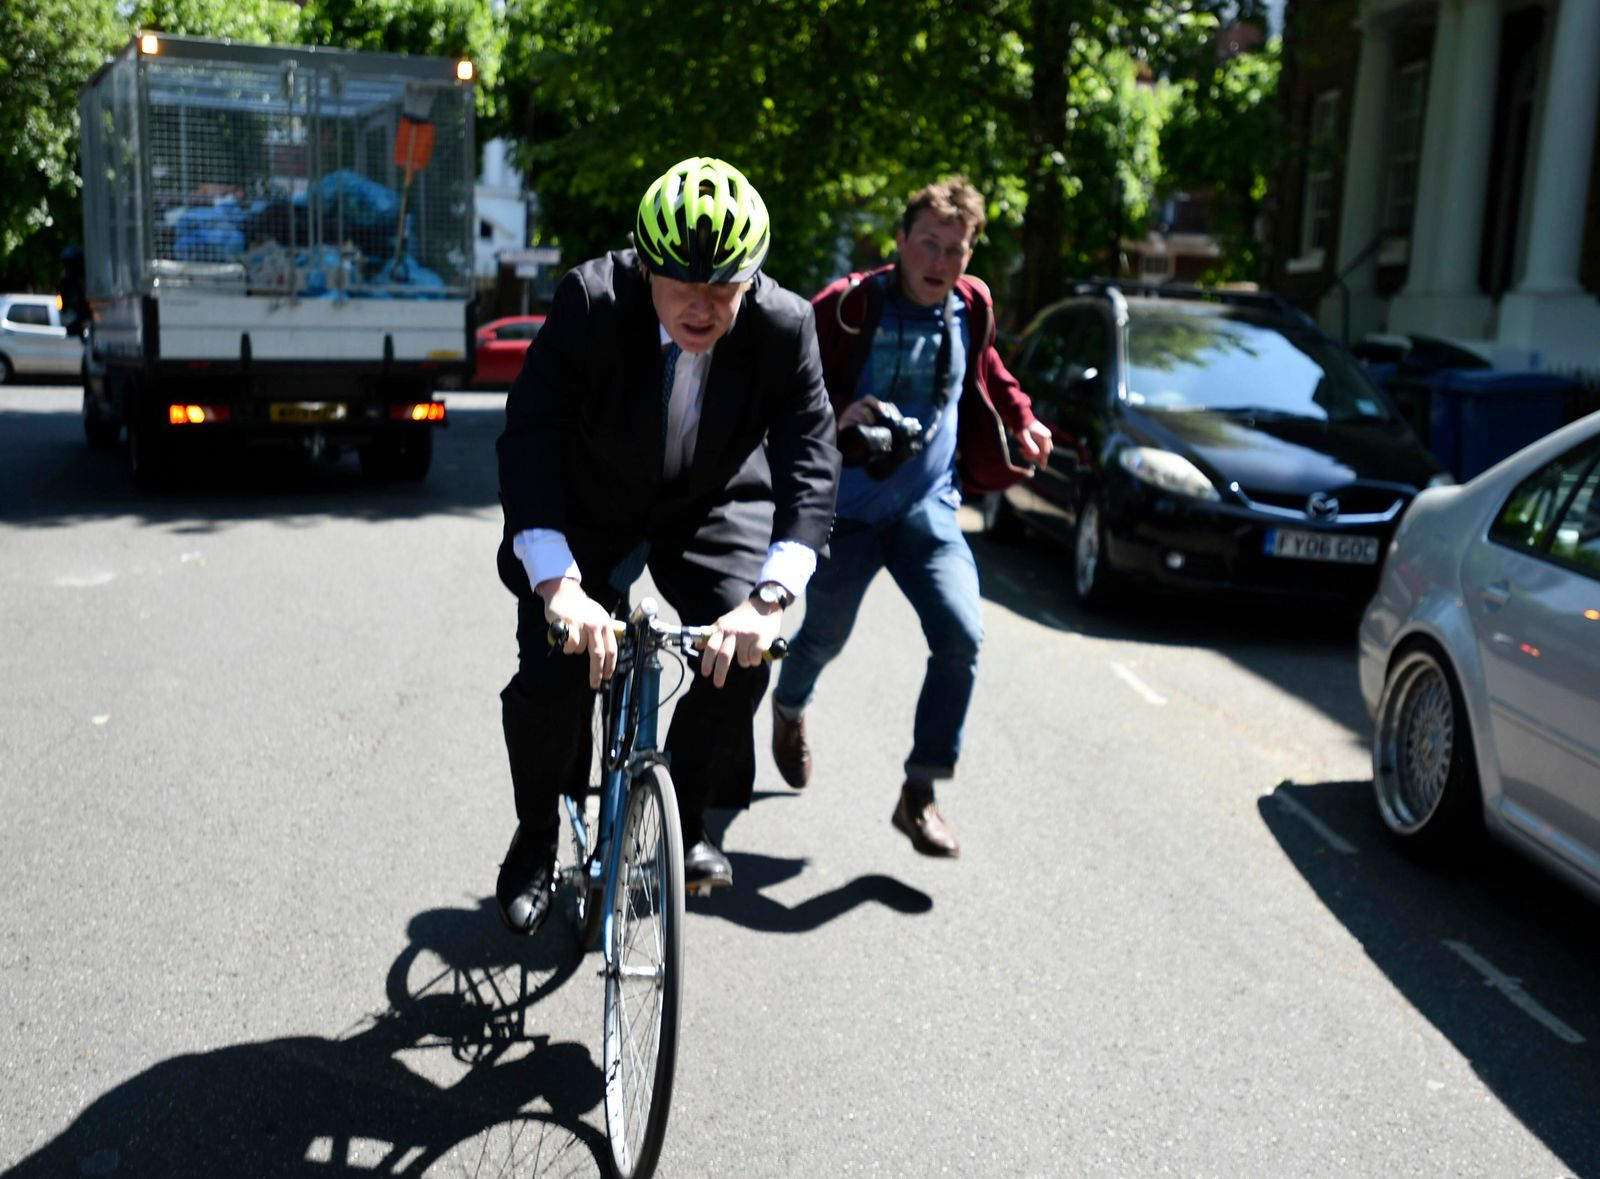 Politician Boris Johnson leaves his home, on the day of the European Parliament elections, in London, Thursday May 23, 2019. (David Mirzoeff/PA via AP)